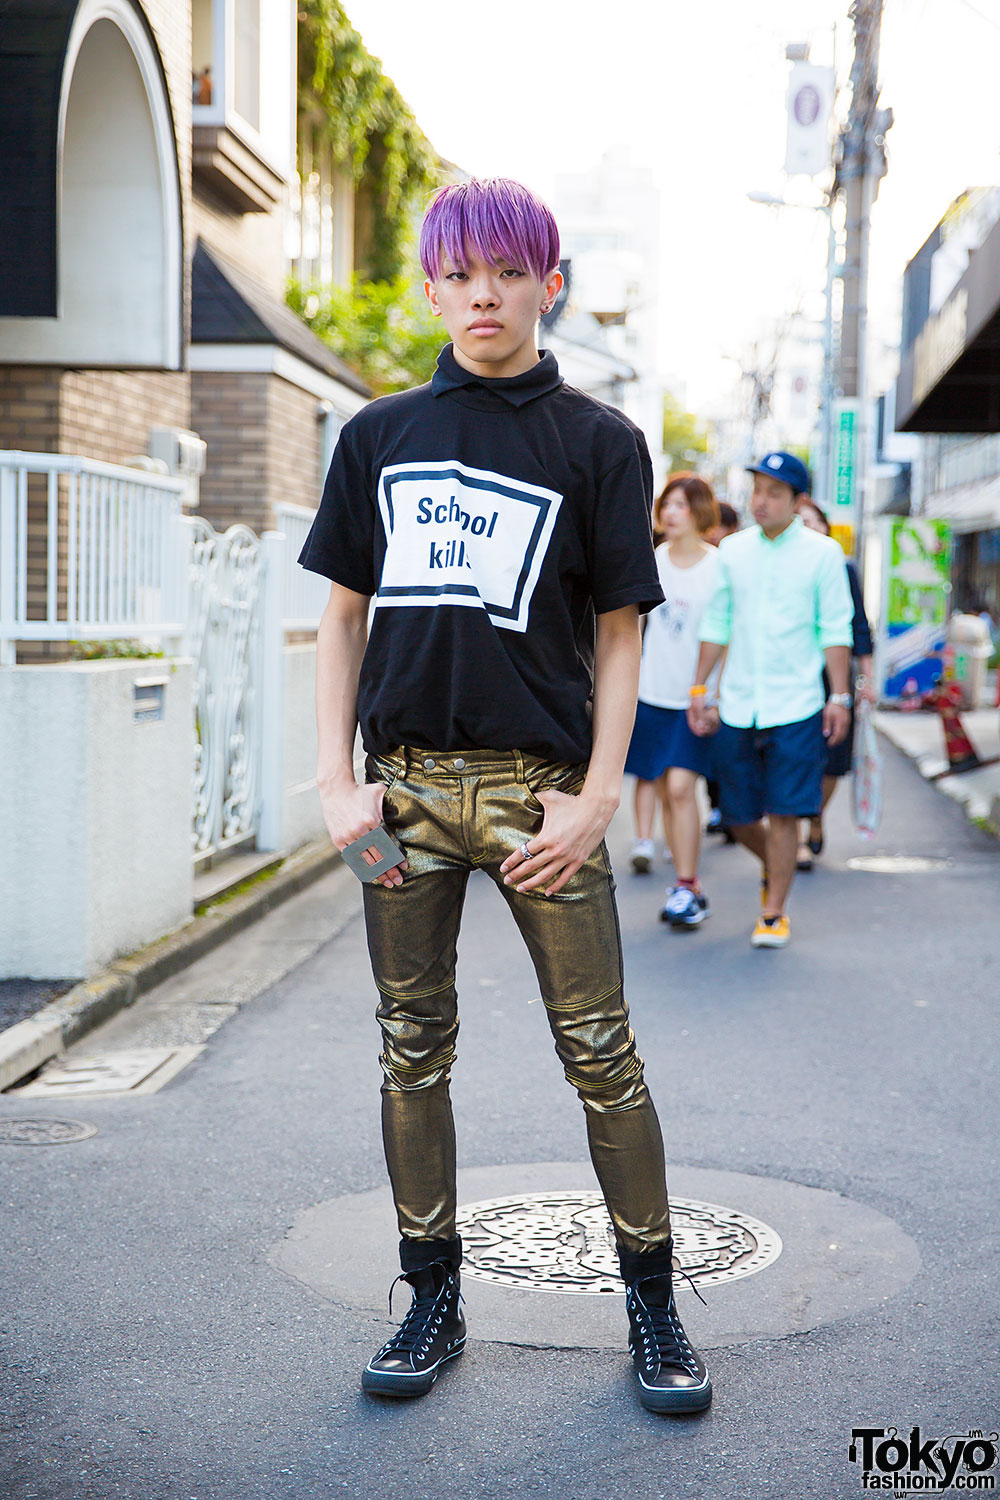 Purple Haired Harajuku Guy In Hyein Seo Quot School Kills Quot Tee